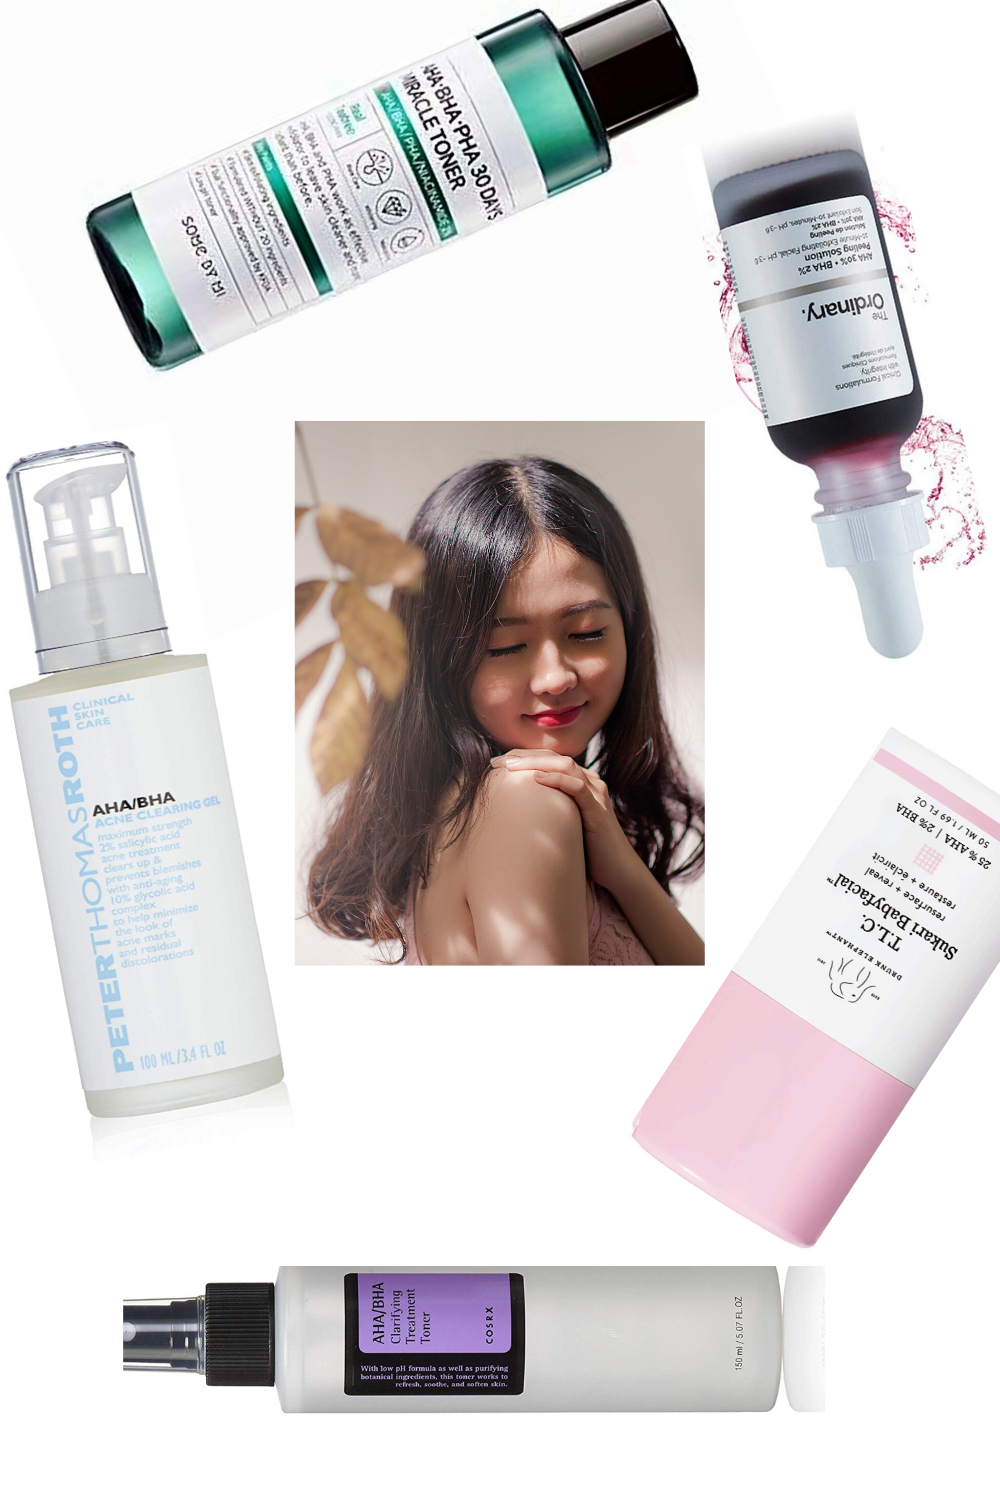 Products With Aha And Bha Both In 2020 Face Serum Skin Care Skin Care Routine